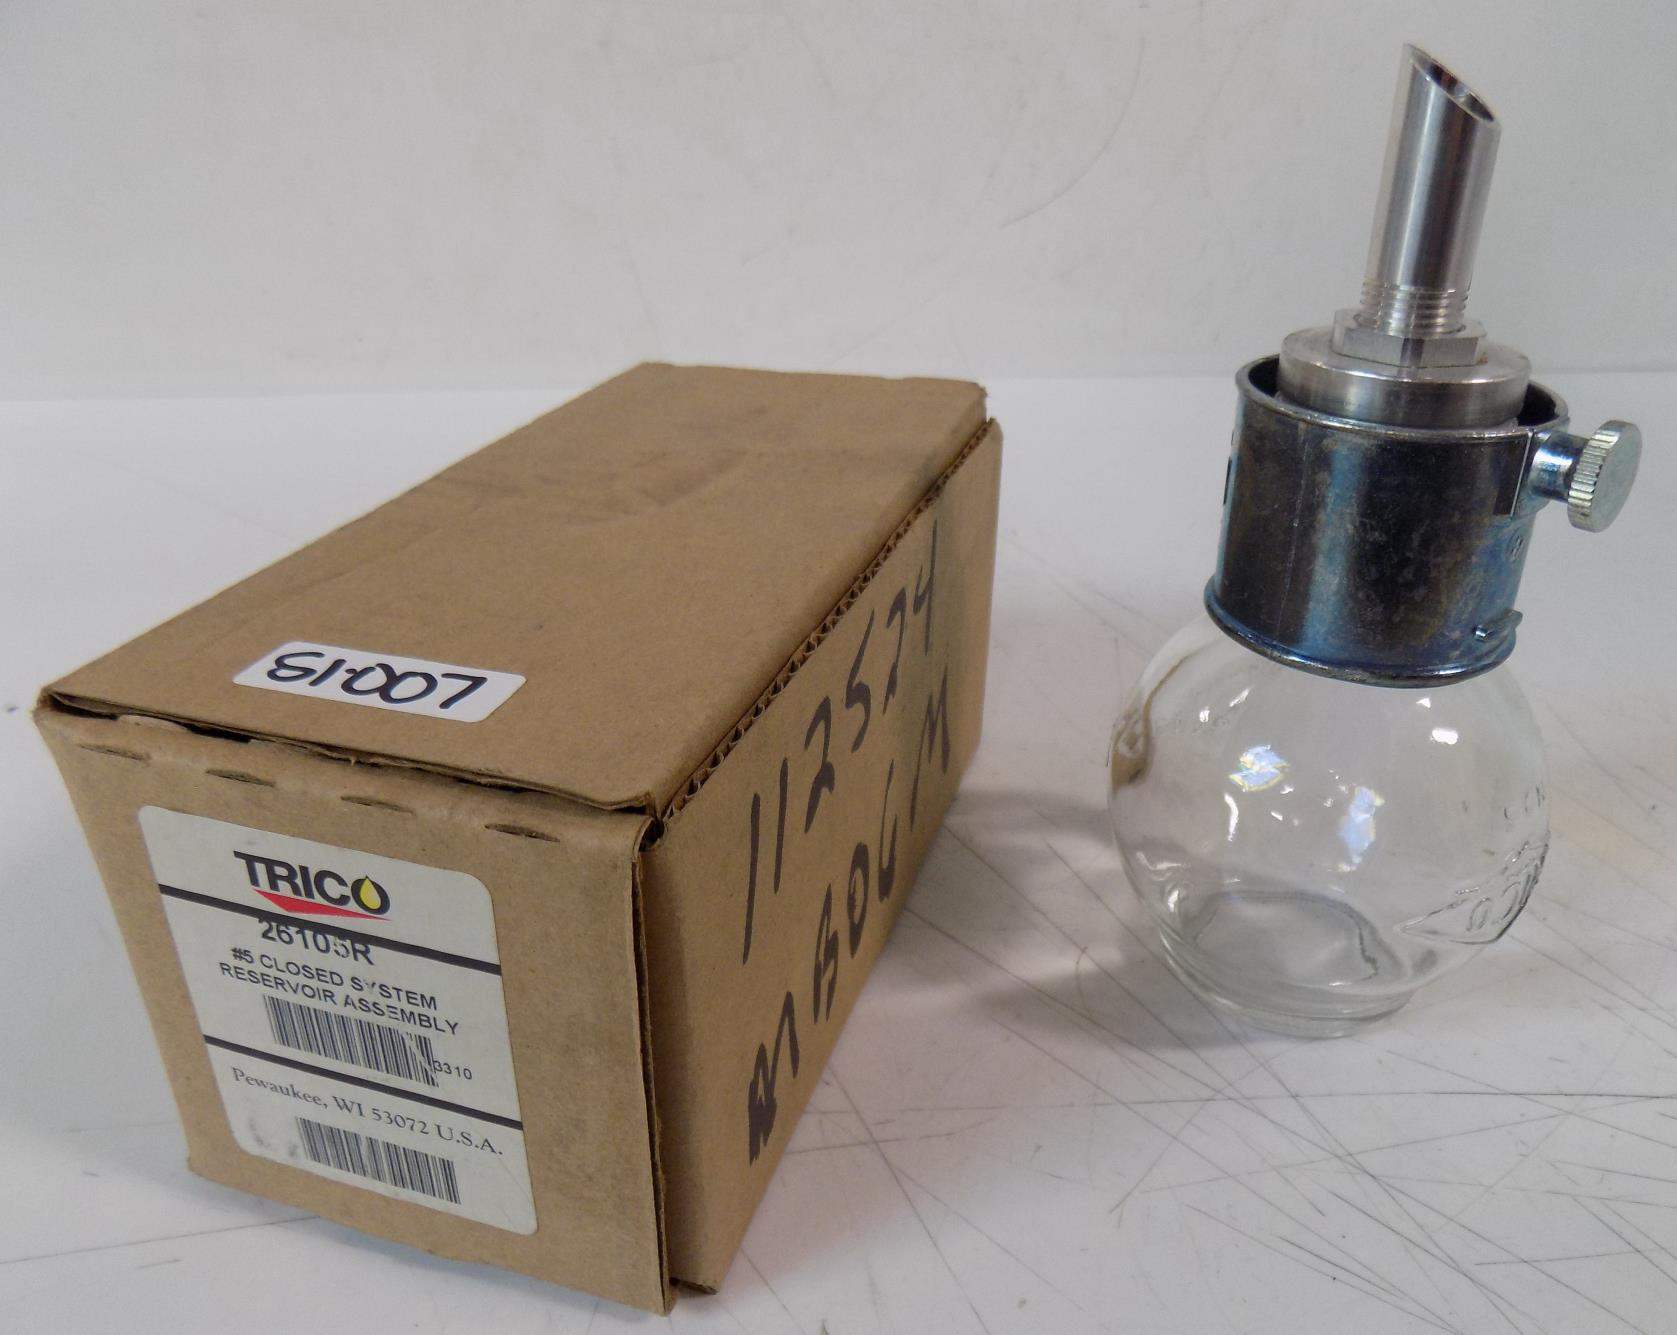 Details about TRICO #5 CLOSED SYSTEM RESERVOIR ASSEMBLY 26105R NIB